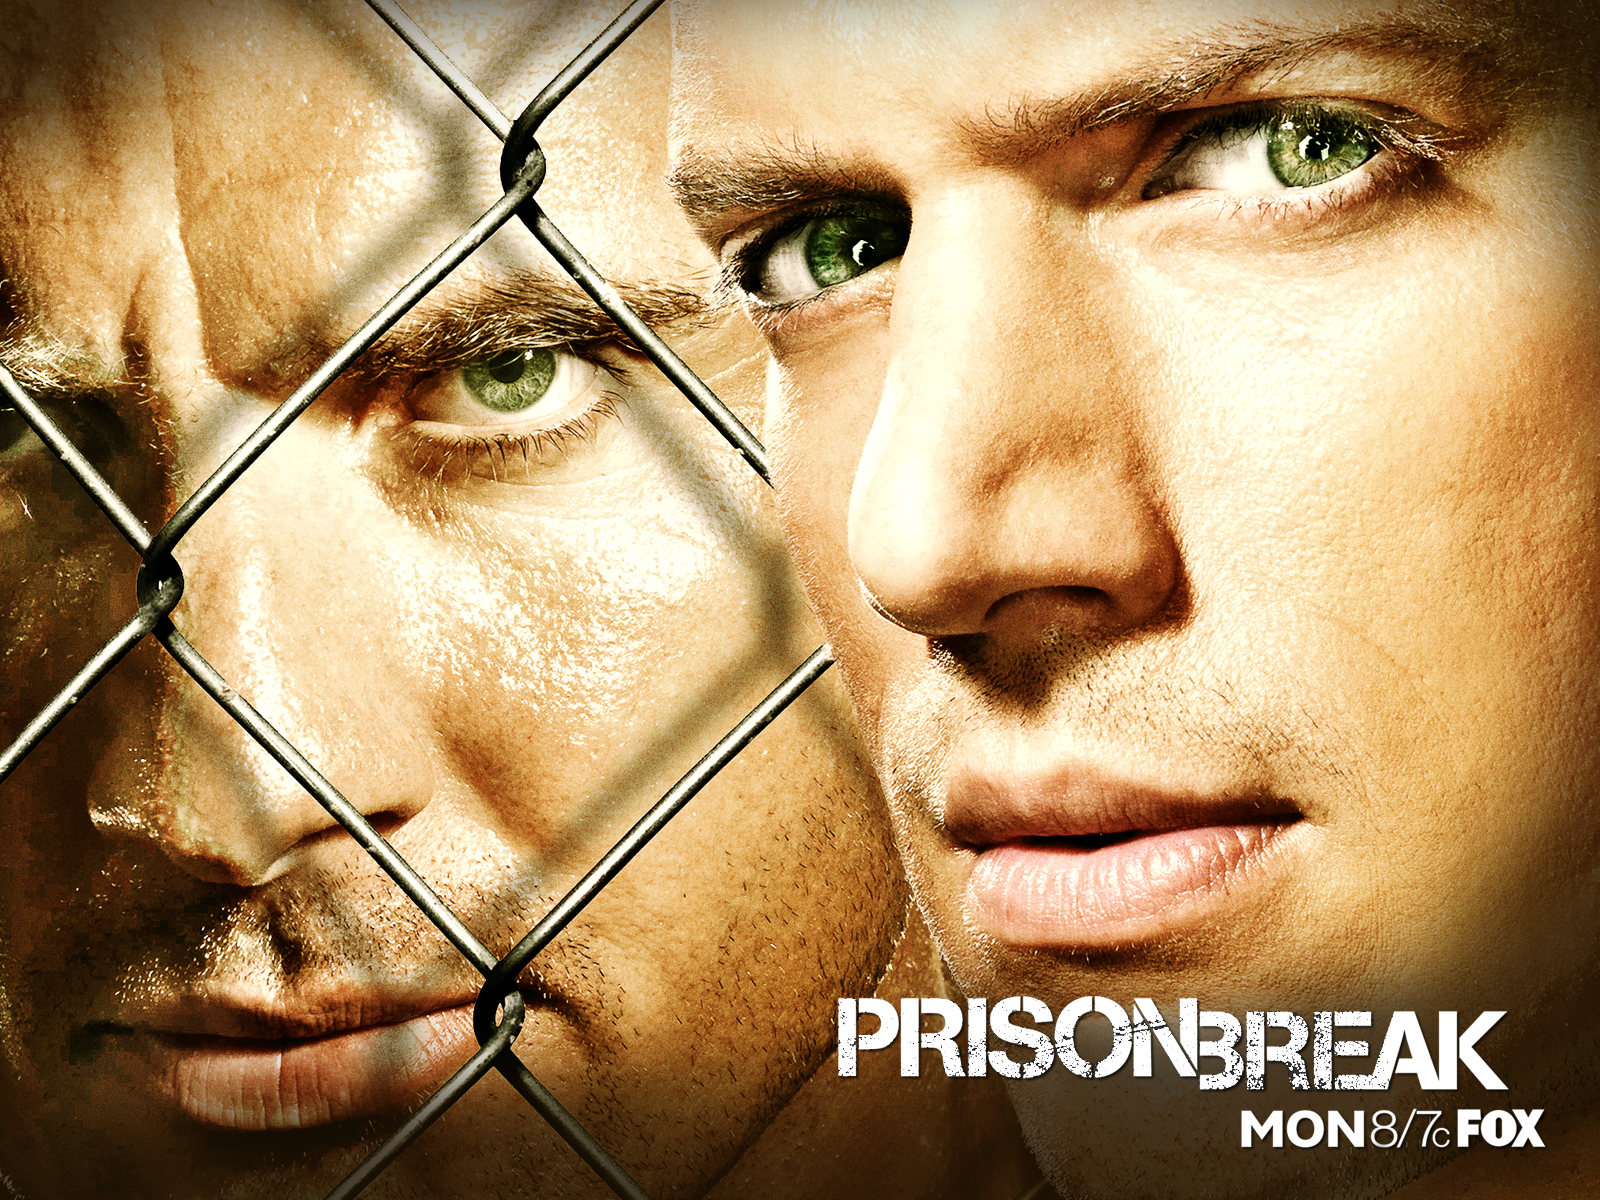 Prison Break TV Series 2 145.44 Kb